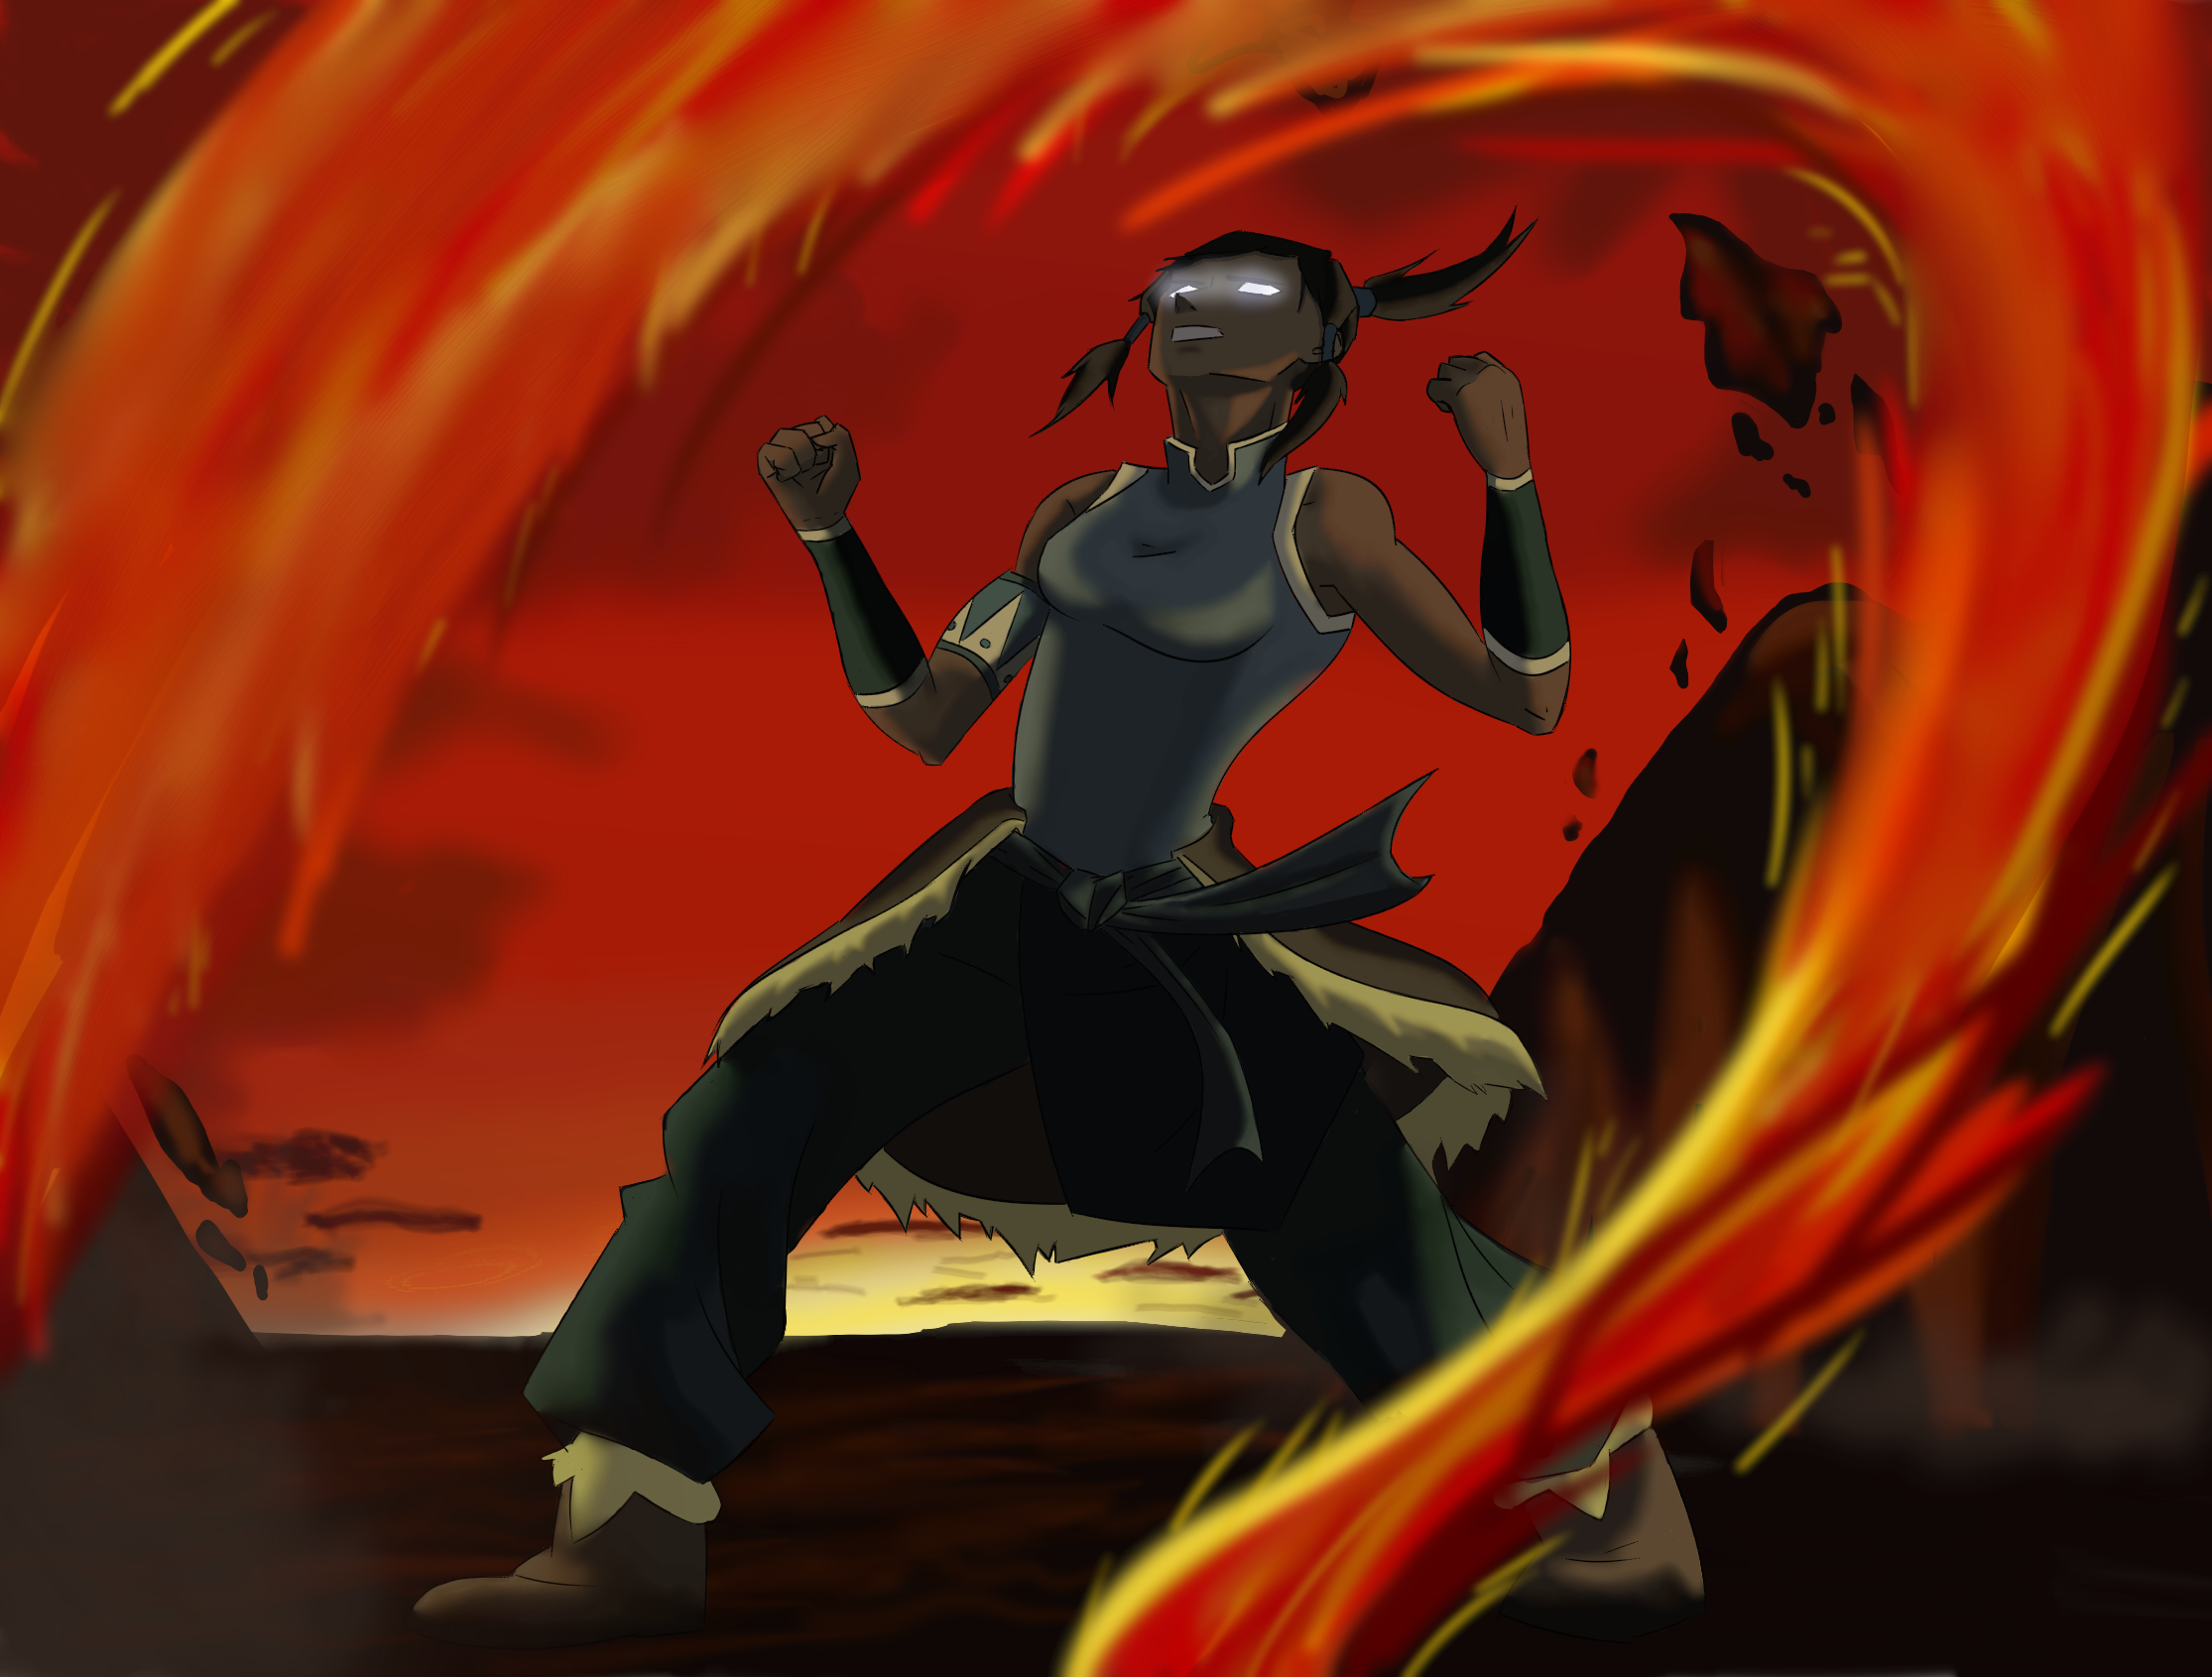 Korra - Avatar State by TreesONature777 on DeviantArt